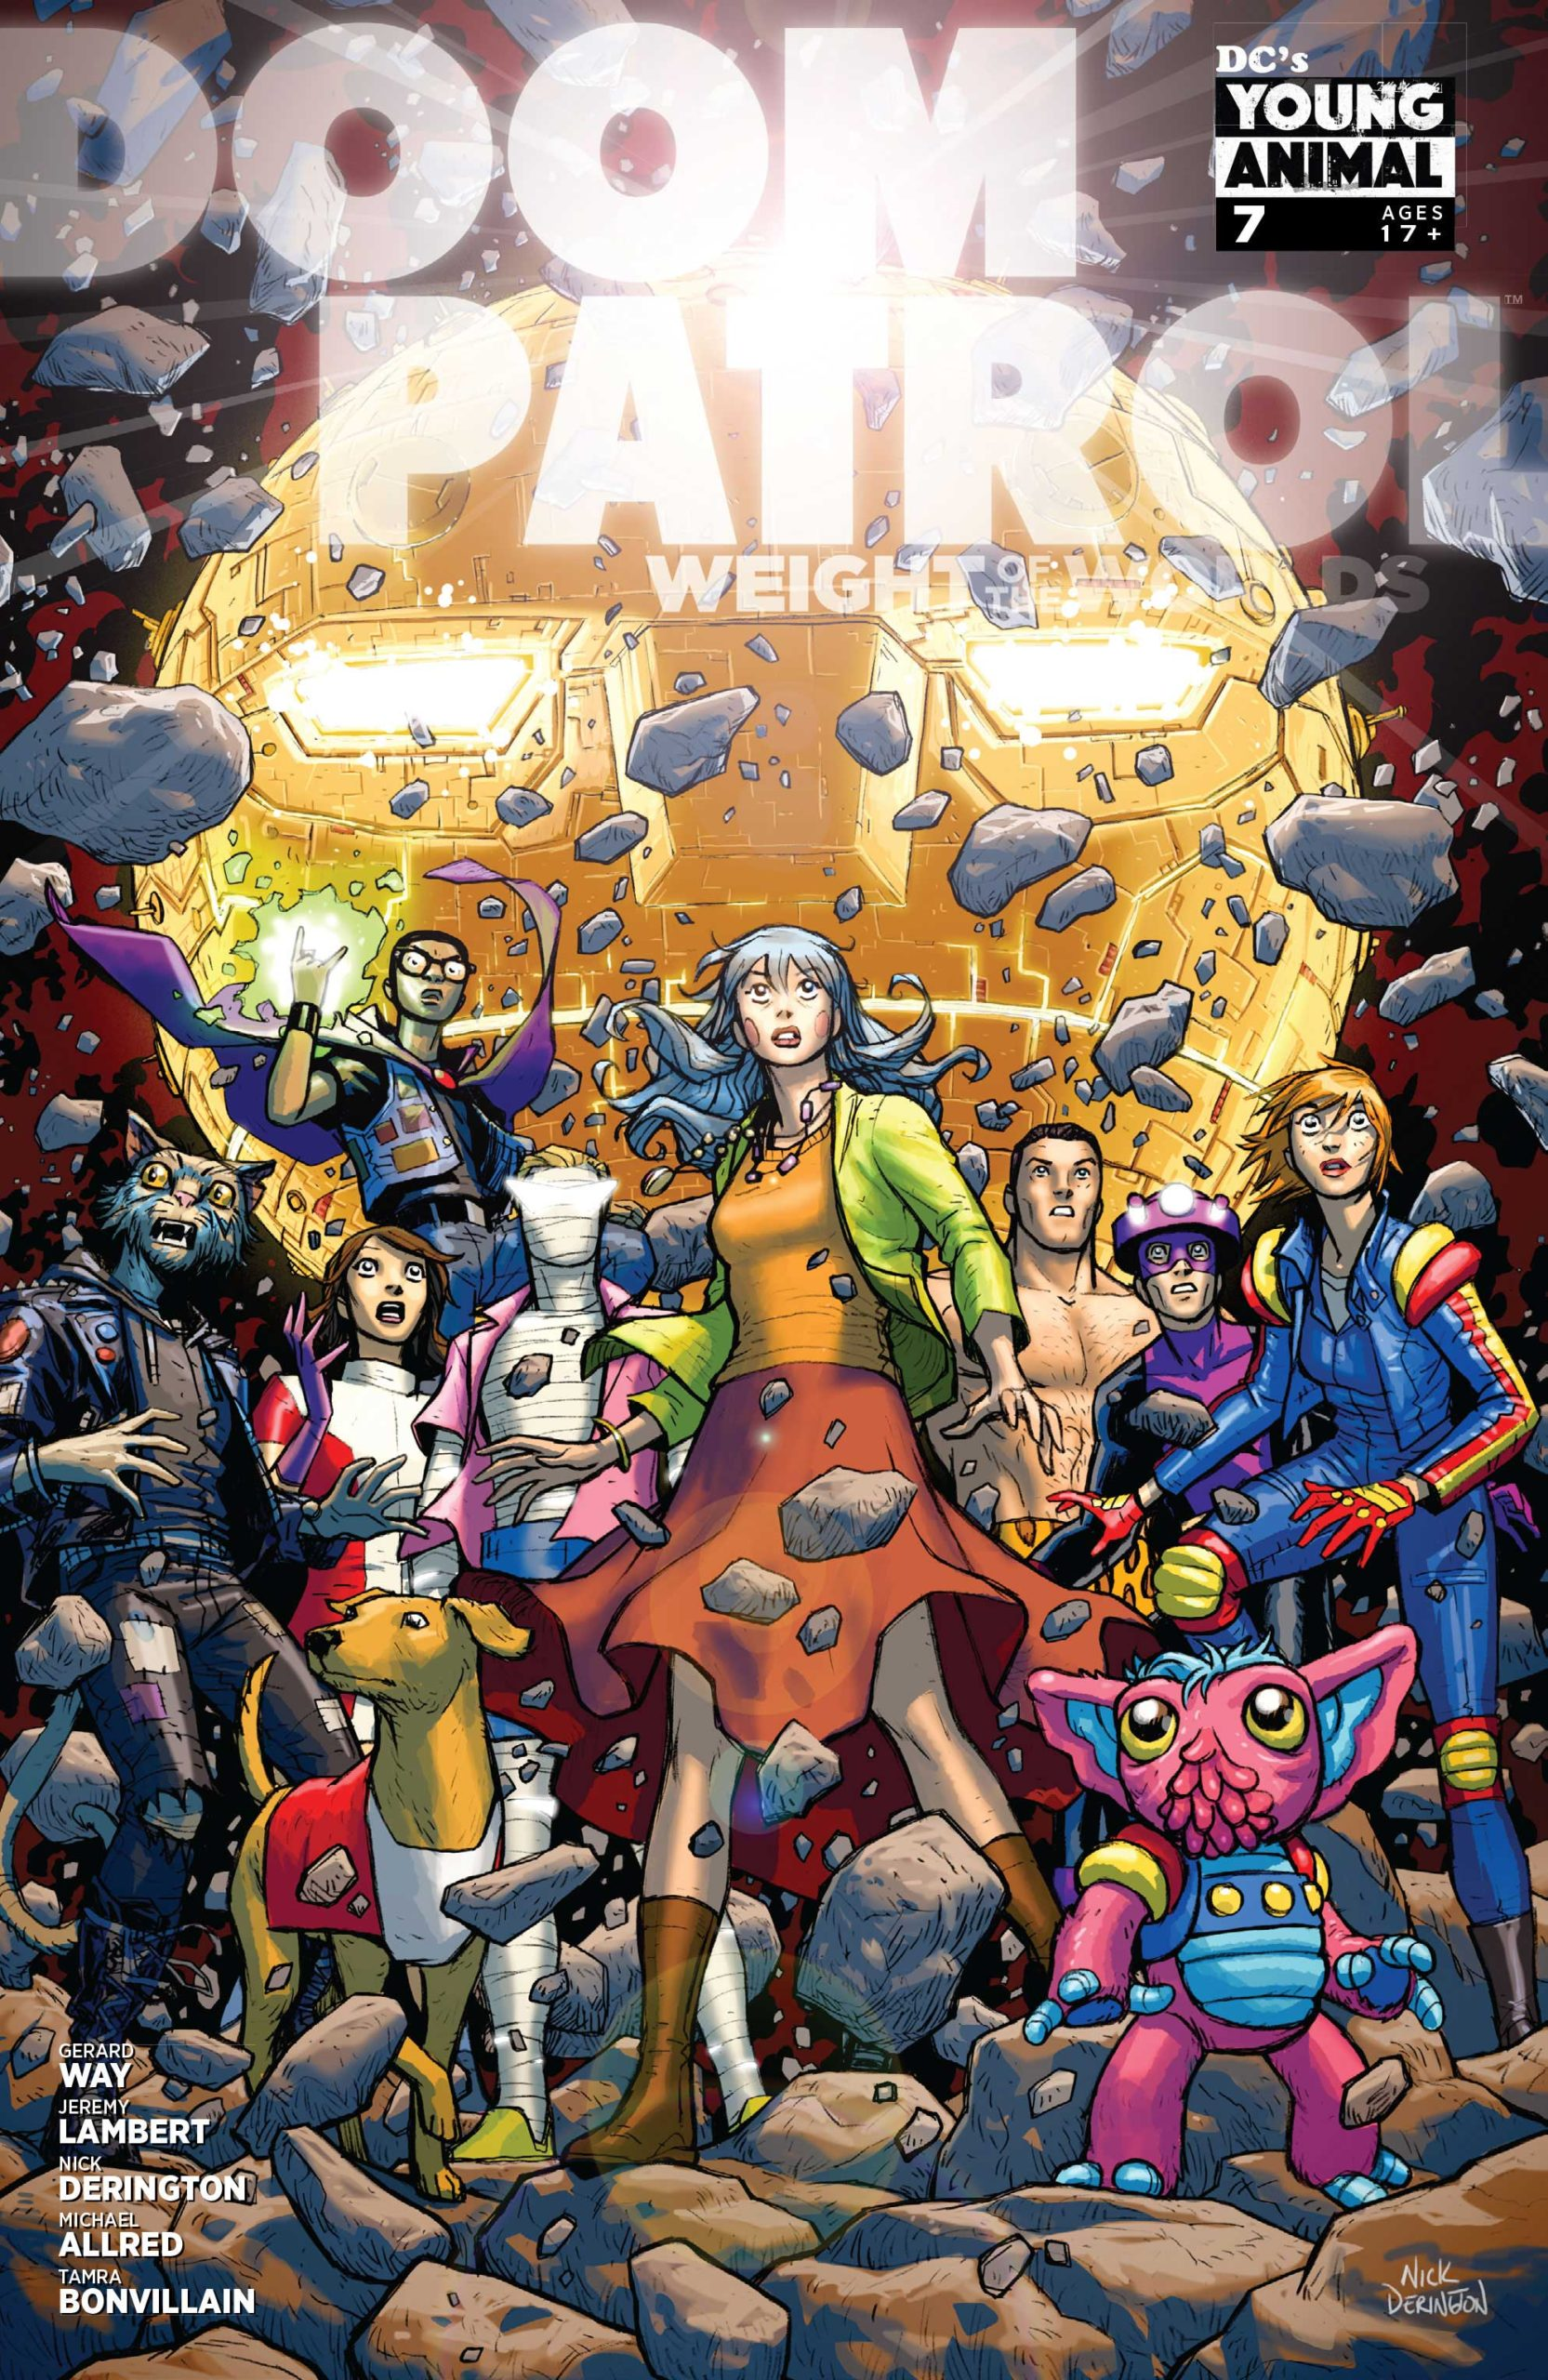 Doom Patrol Weight of the worlds #7